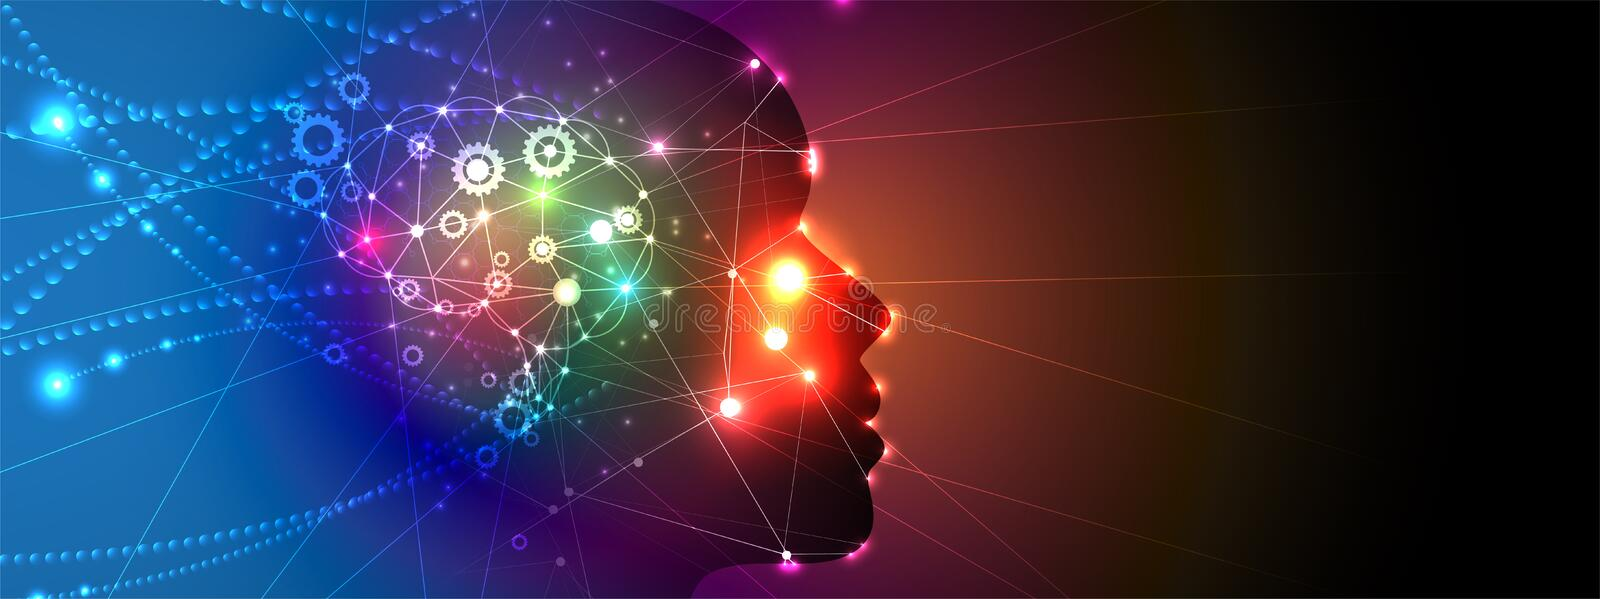 Artificial intelligence woman with hair like neuron net. Technology web background. Virtual conc. Abstract Artificial intelligence. Technology web background